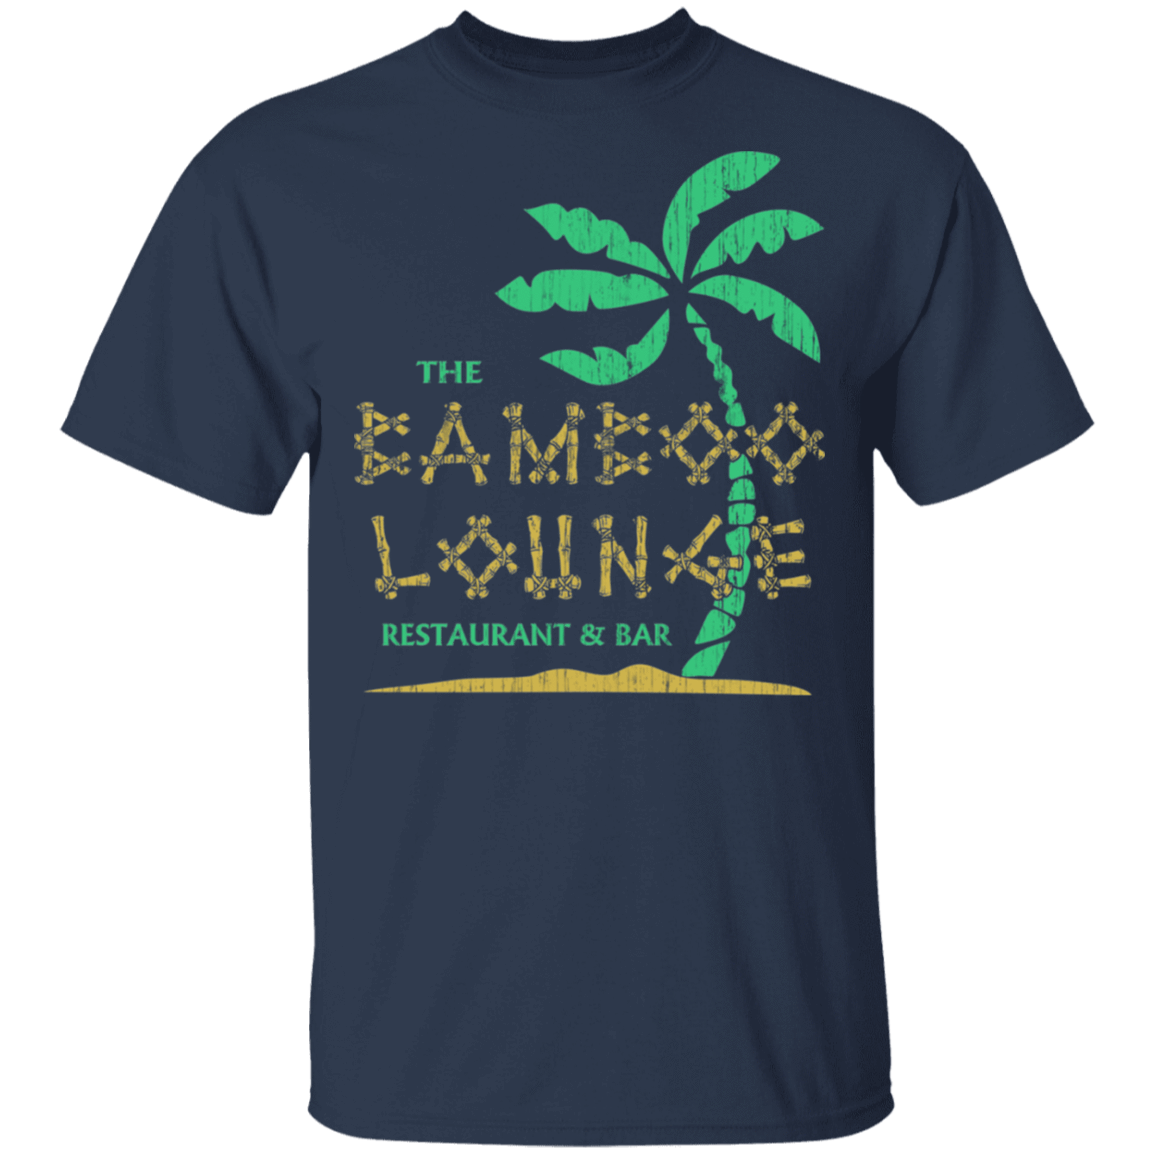 The Bamboo Lounge Restaurant & Bar Goodfellas T-Shirts, Hoodies, Tank 22-111-79712491-250 - Tee Ript